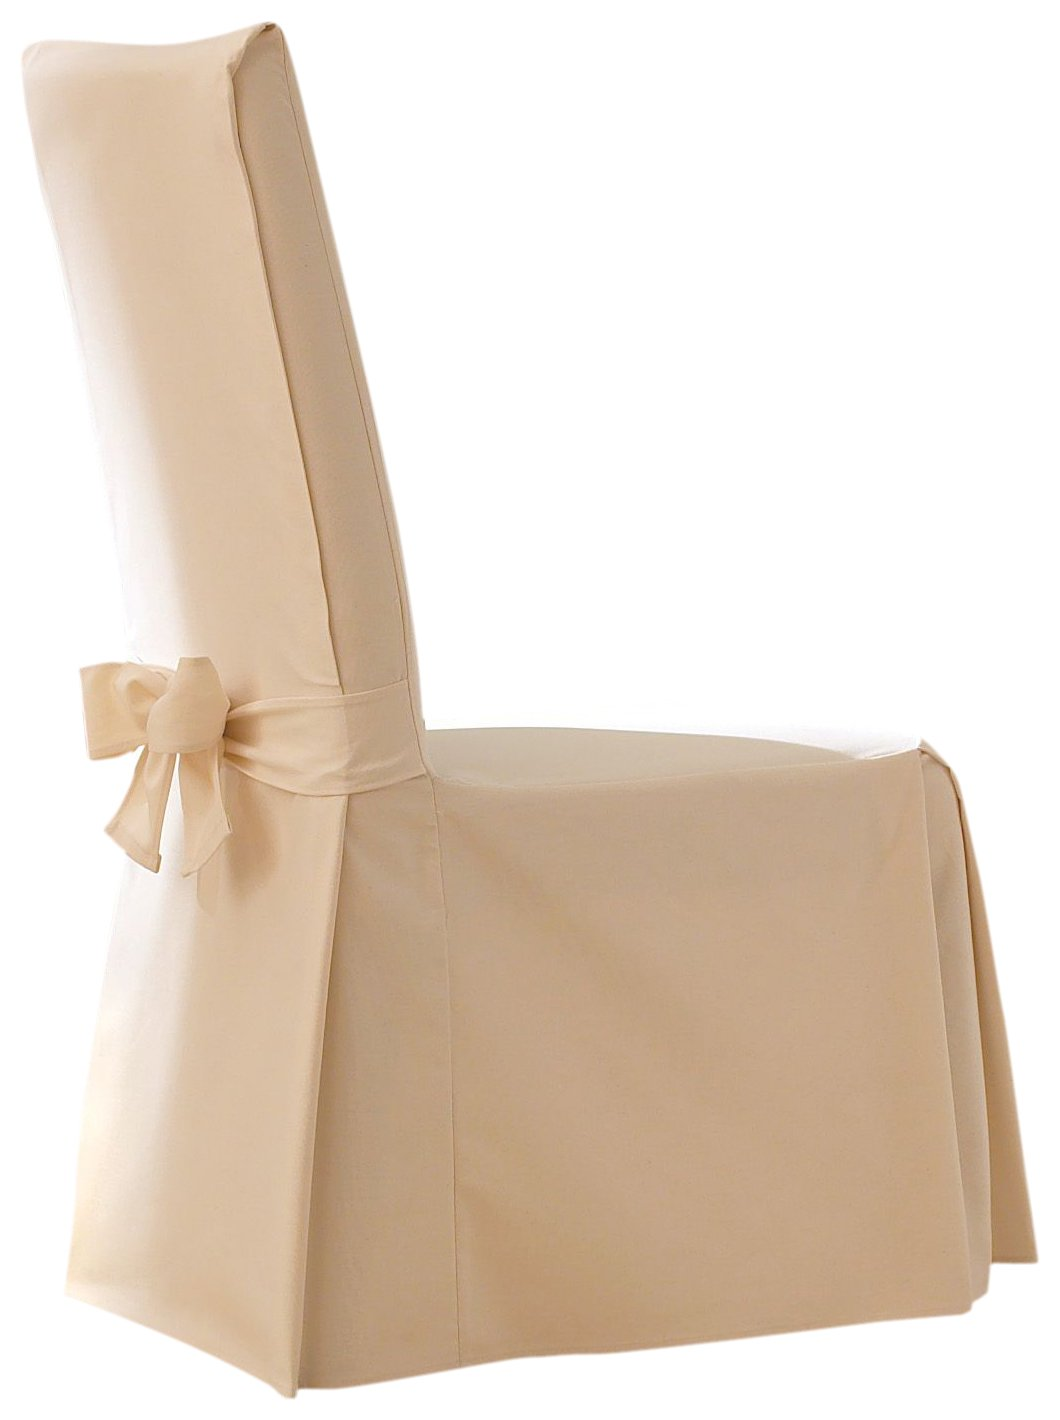 Sure Fit Cotton Duck Full Dining Room Chair Cover, Natural